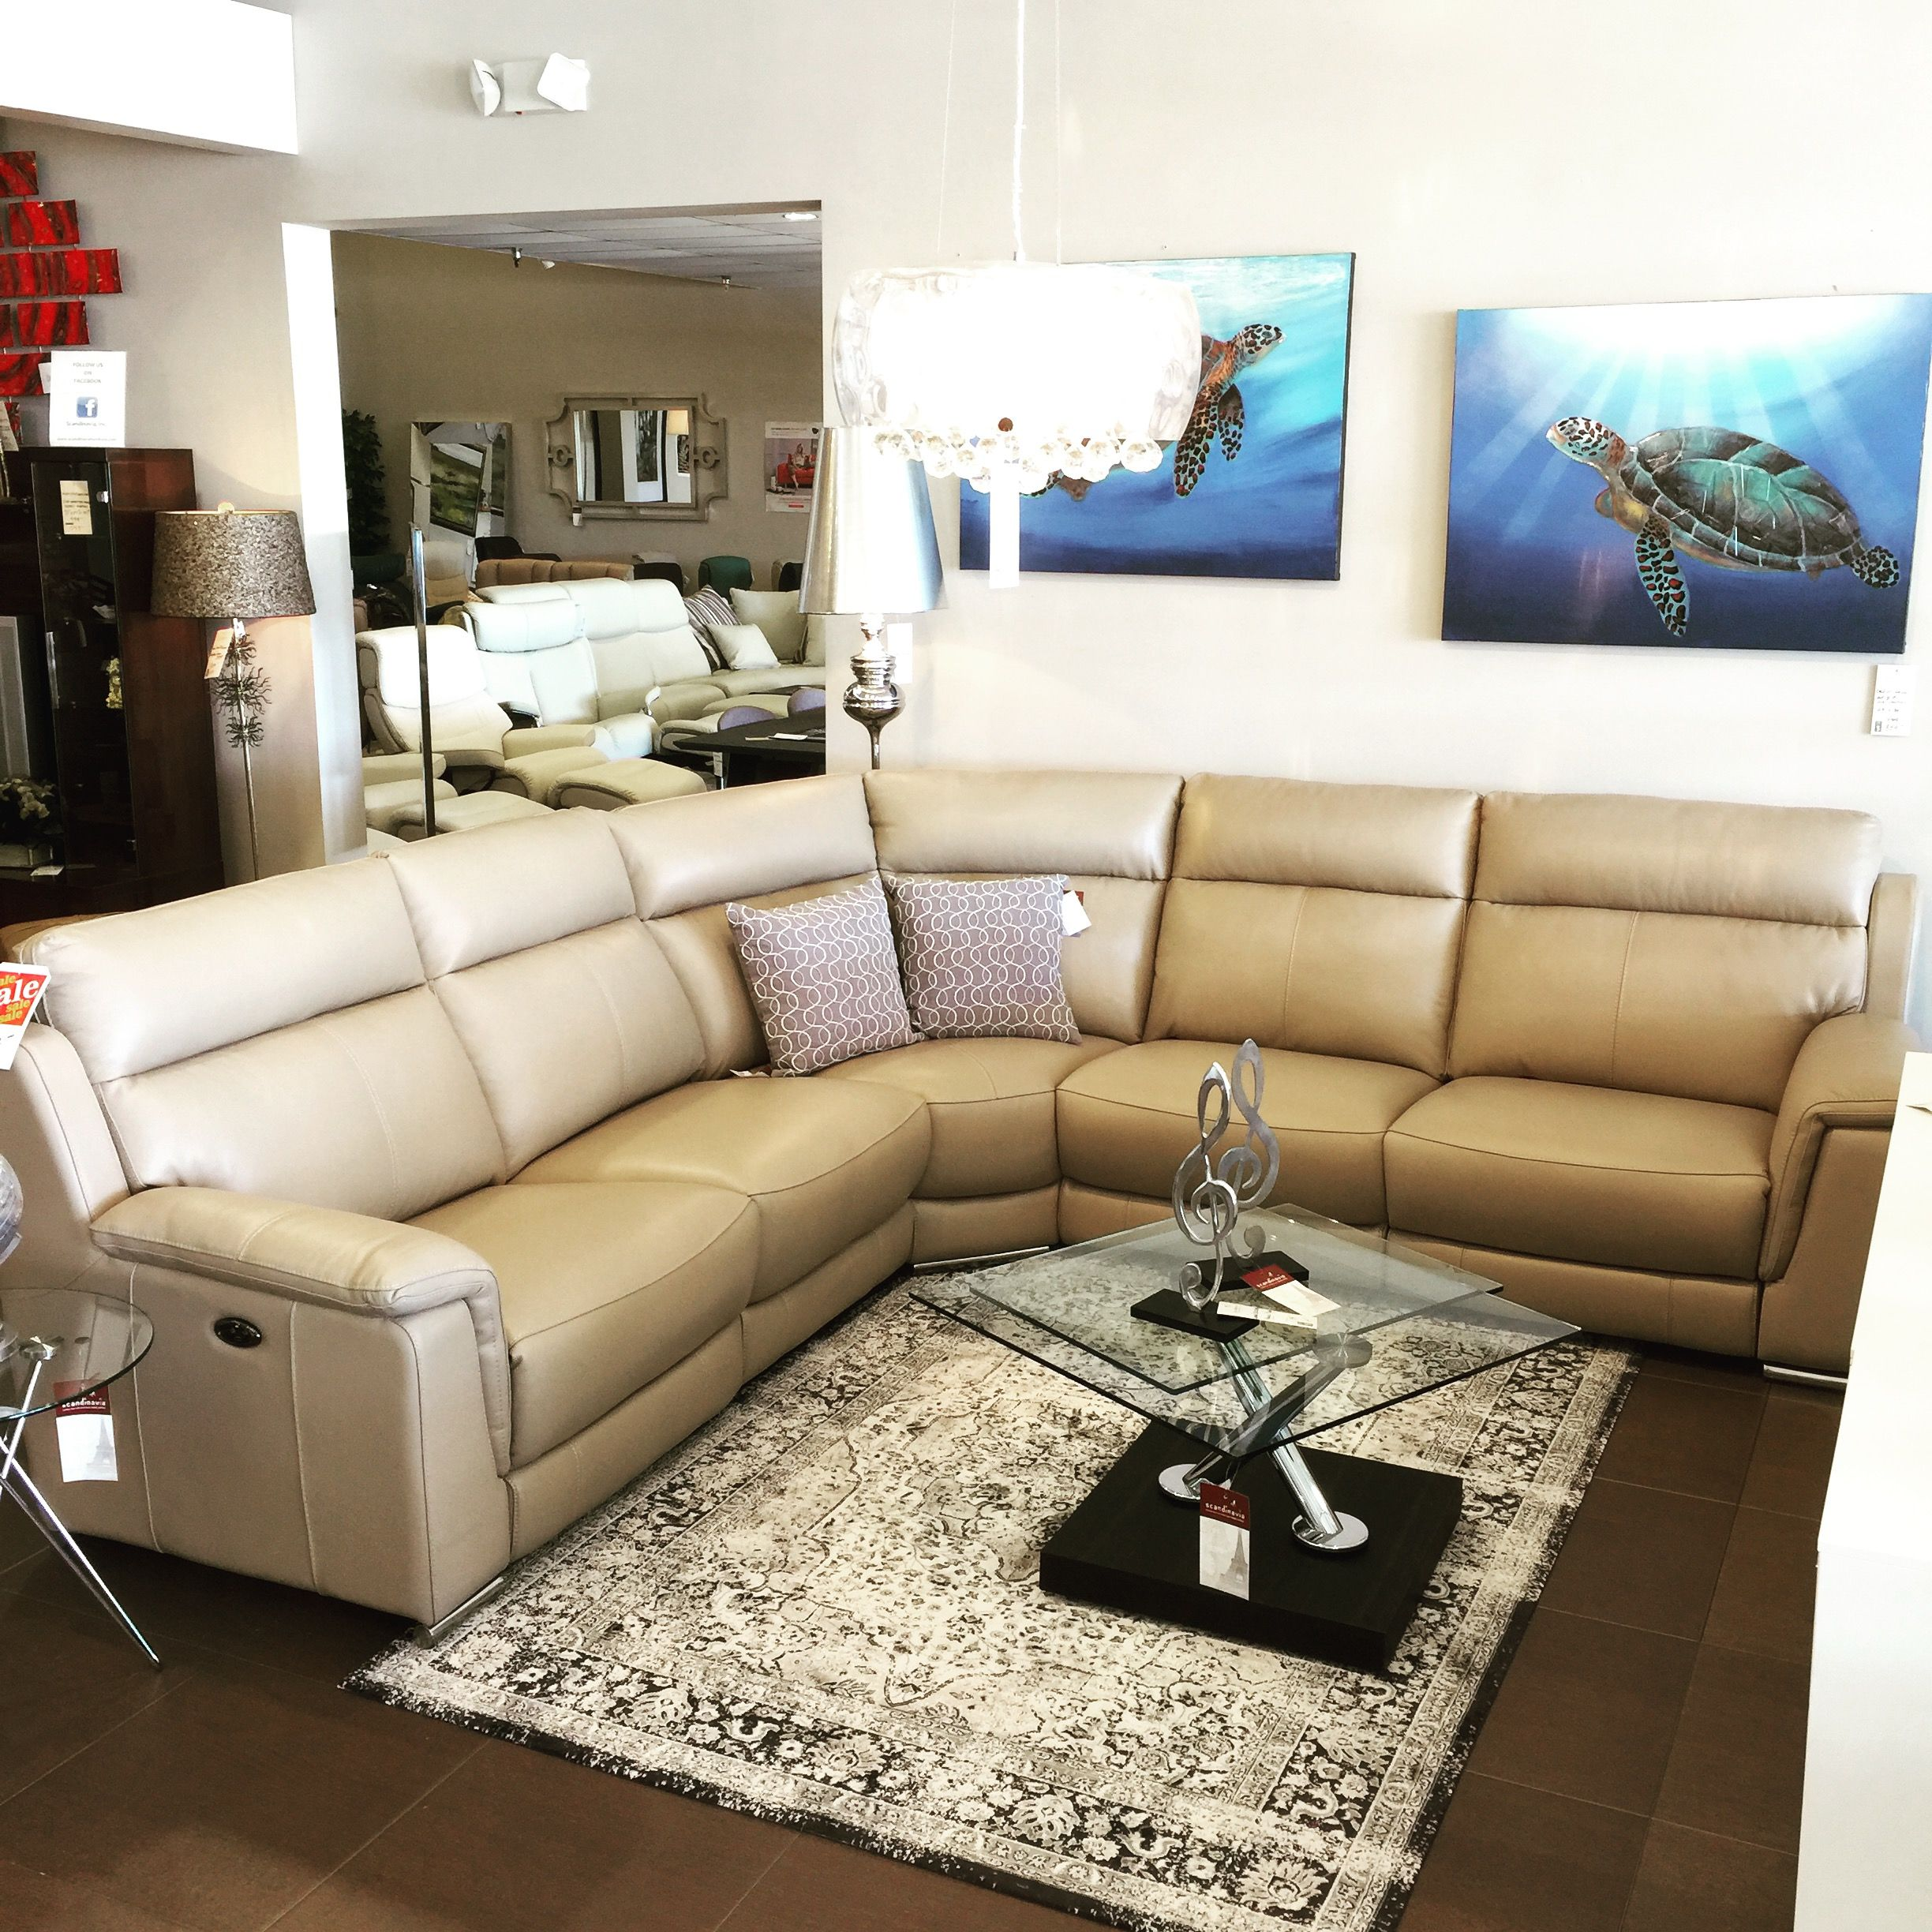 Htl Relax Sectional Leather Reclining Scandinavia Inc Metairie New Orleans Louisiana Contemporary Mode Contemporary Modern Furniture Modern Furniture Furniture